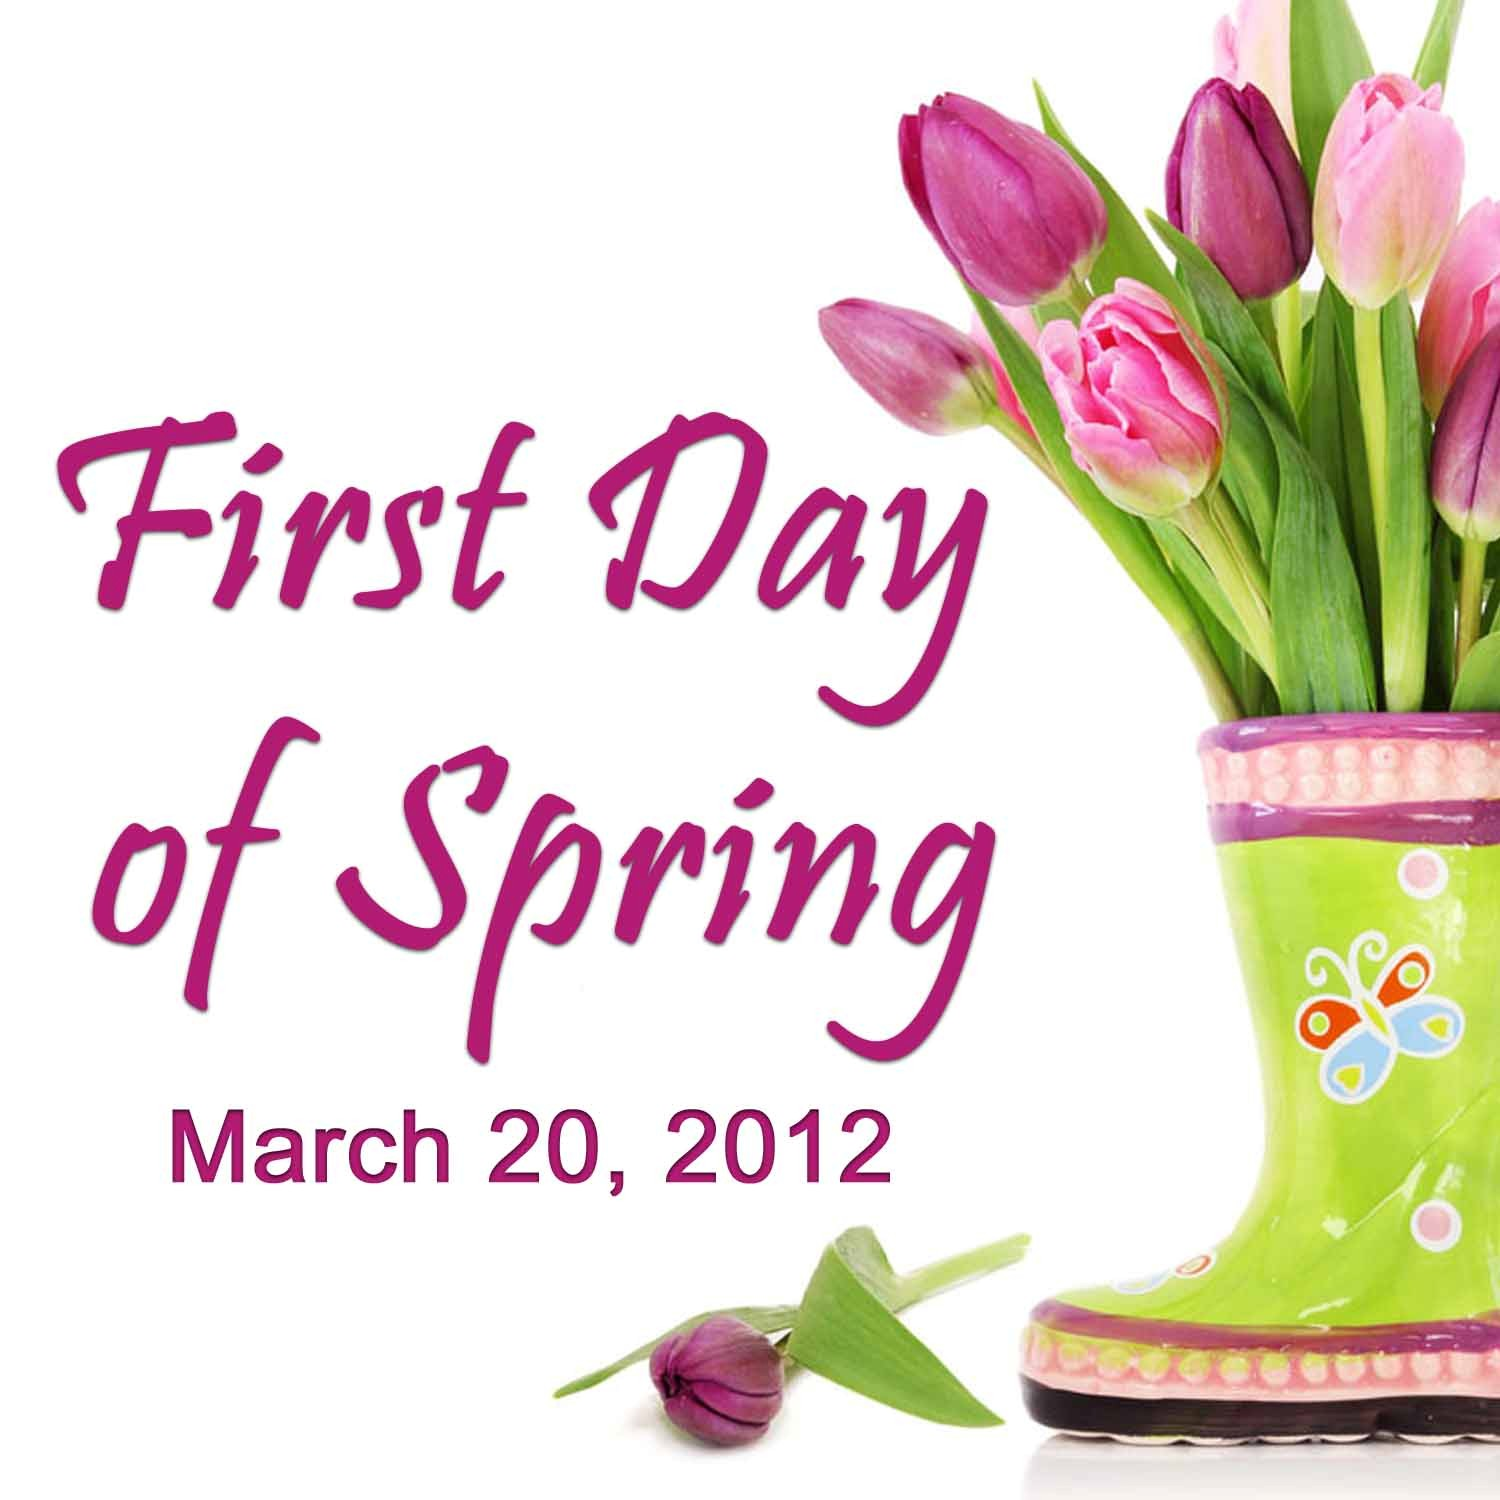 Happy First Day Of Spring Wallpaper 1500x1500   Cool PC 1500x1500